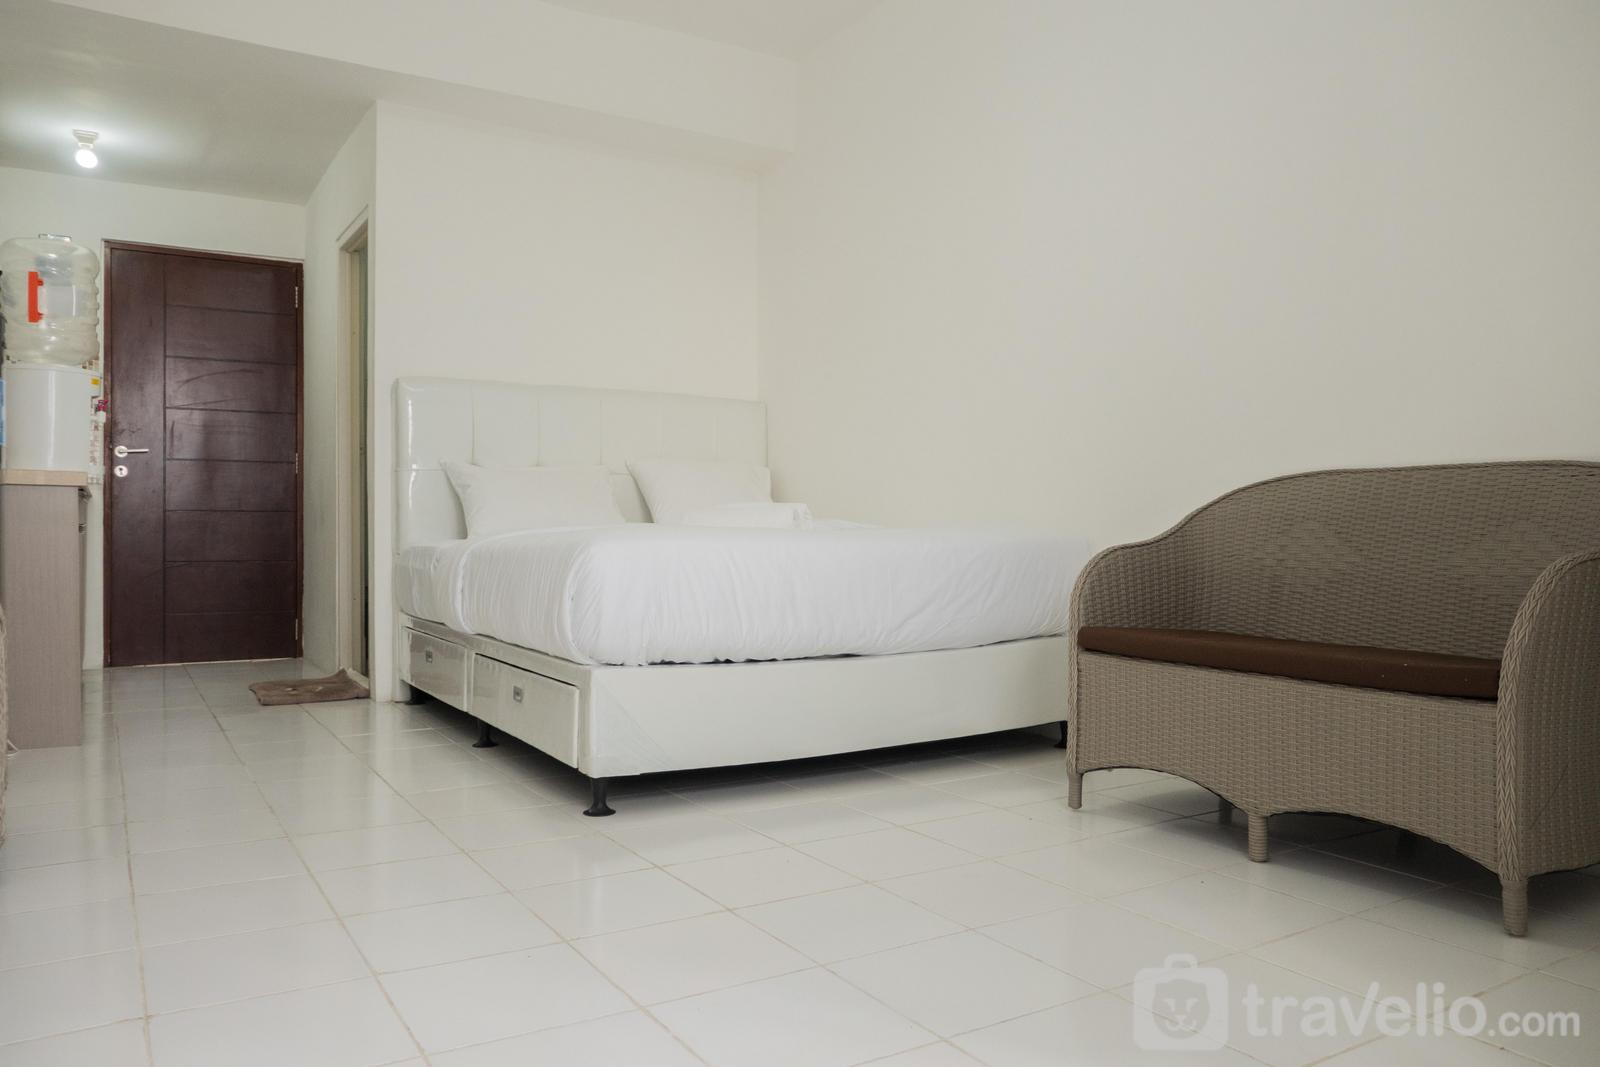 Emerald Towers Bandung - Studio near Metro Indah Mall at Emerald Towers Apartment By Travelio